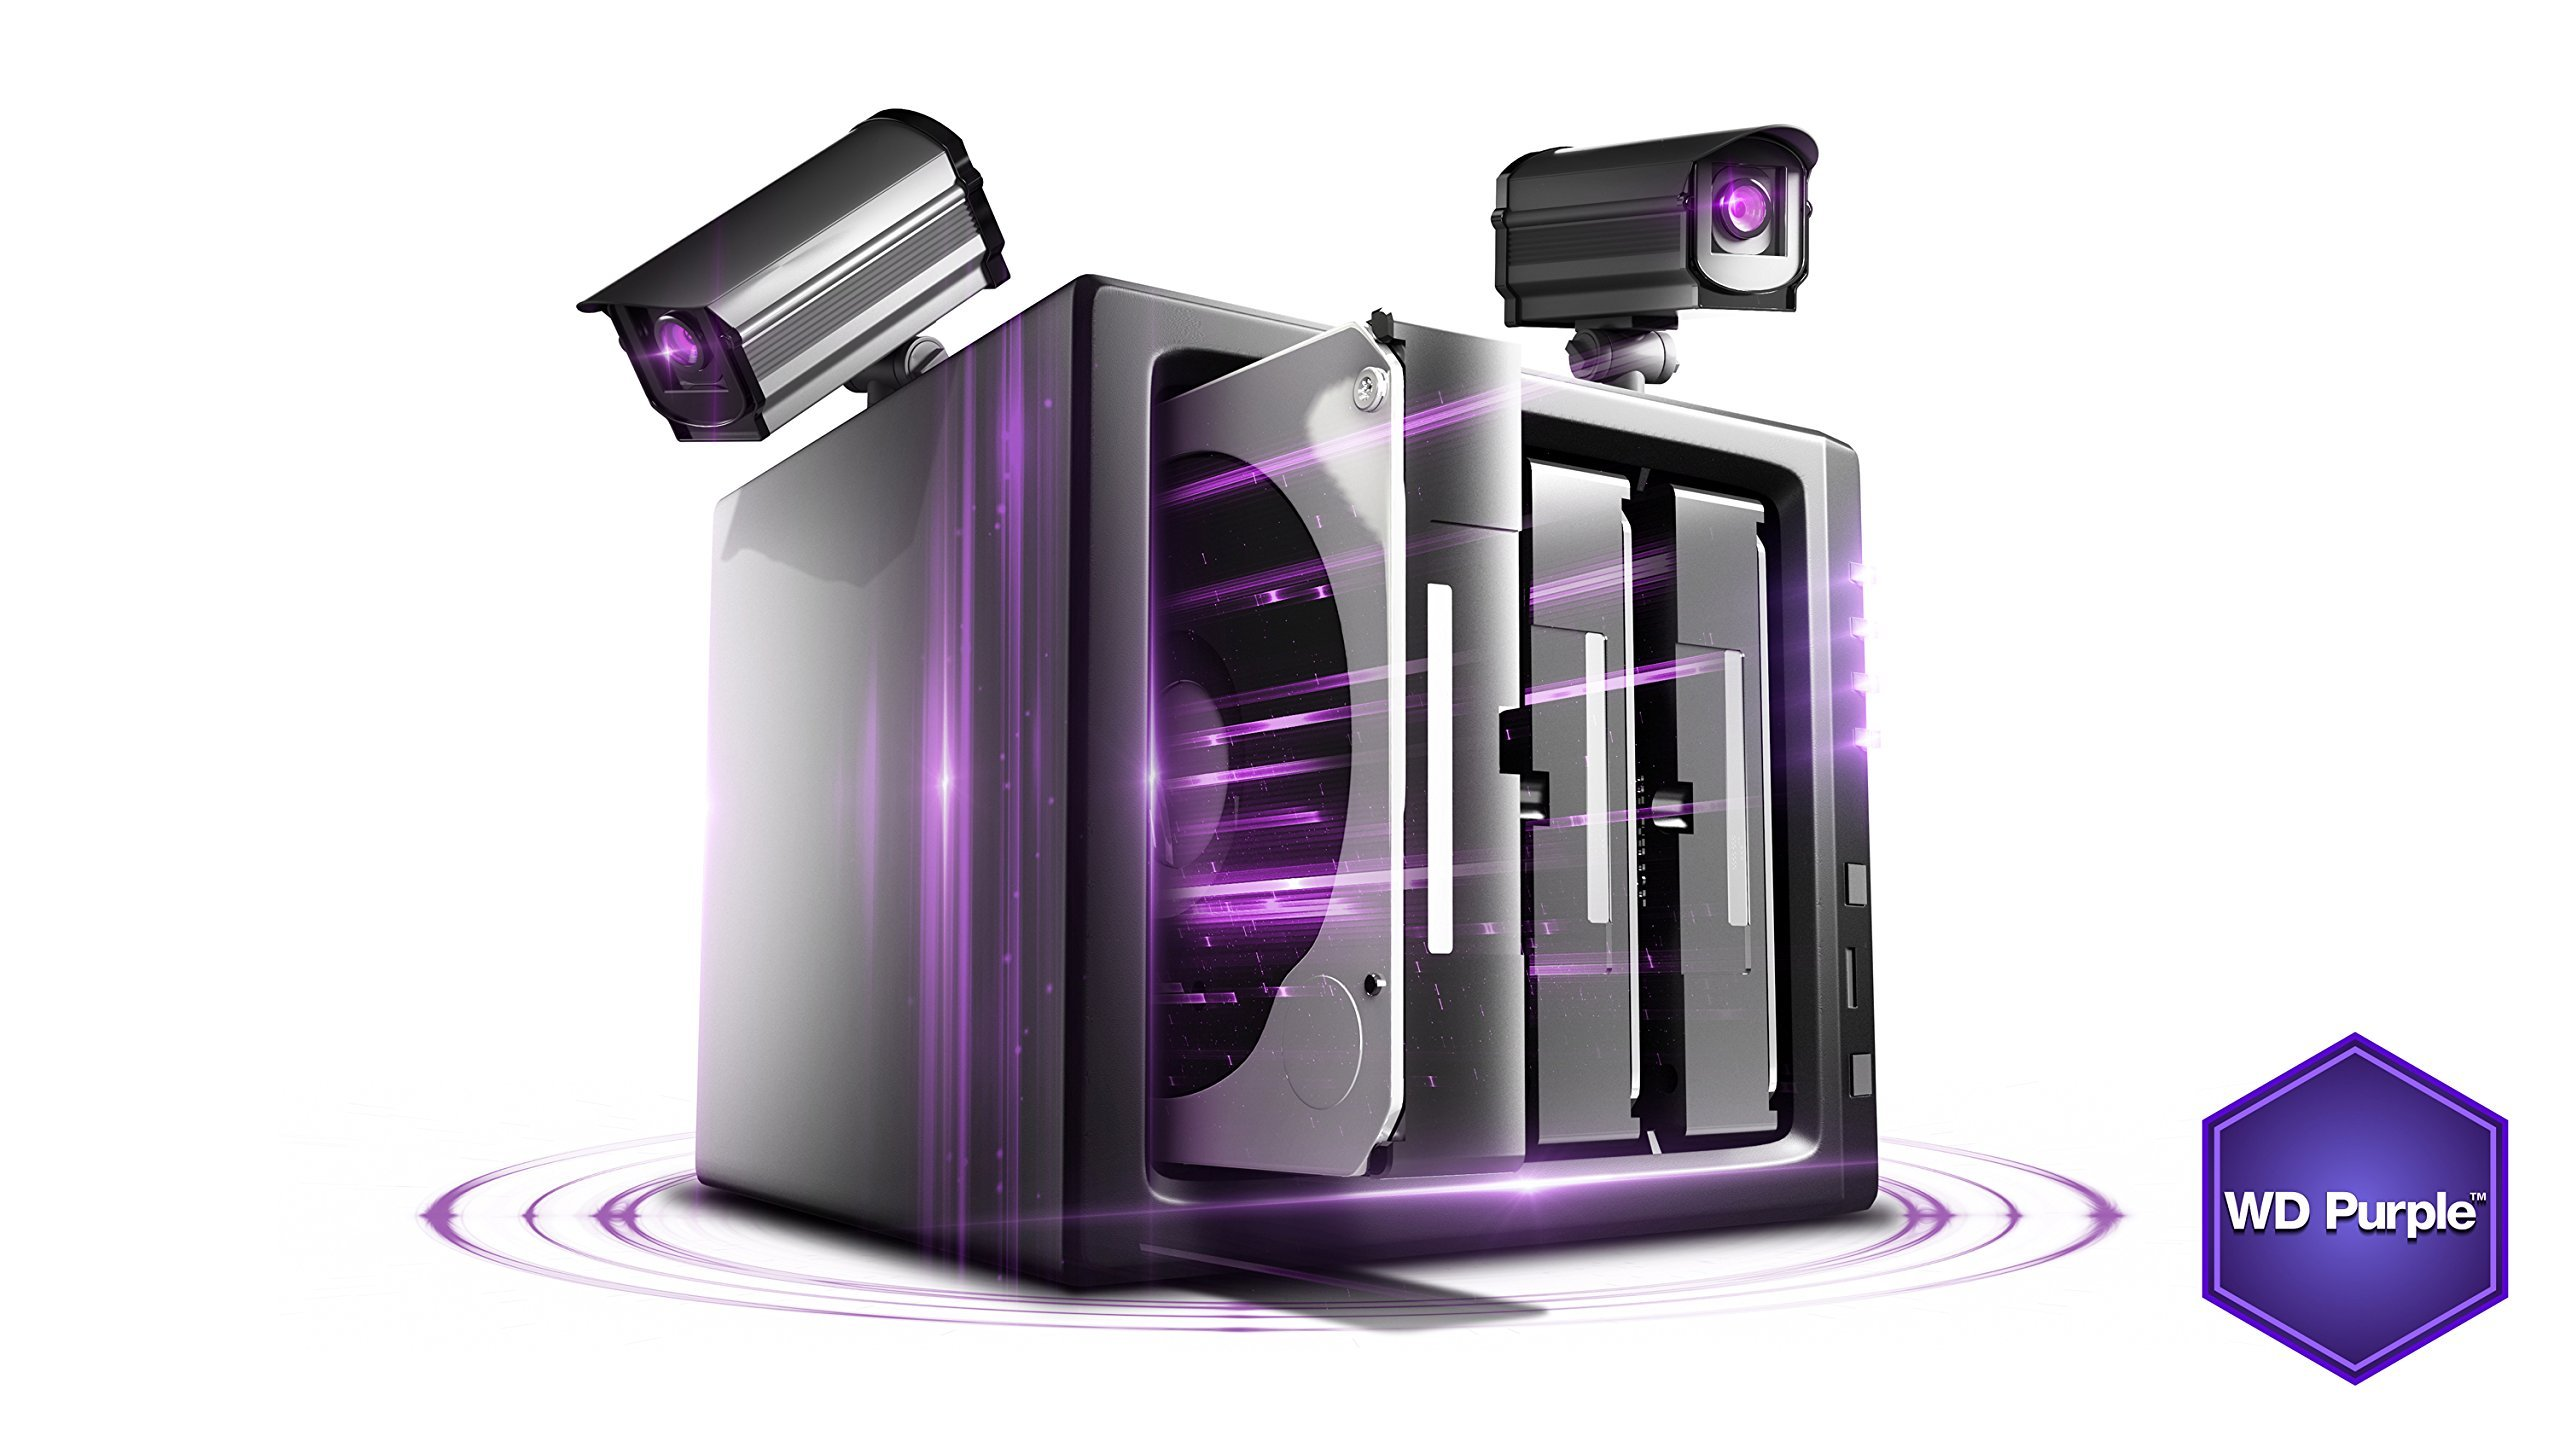 WD Purple 1TB Surveillance Hard Disk Drive - 5400 RPM Class SATA 6 Gb/s 64MB Cache 3.5 Inch - WD10PURX [Old Version] (Certified Refurbished) by Western Digital (Image #5)